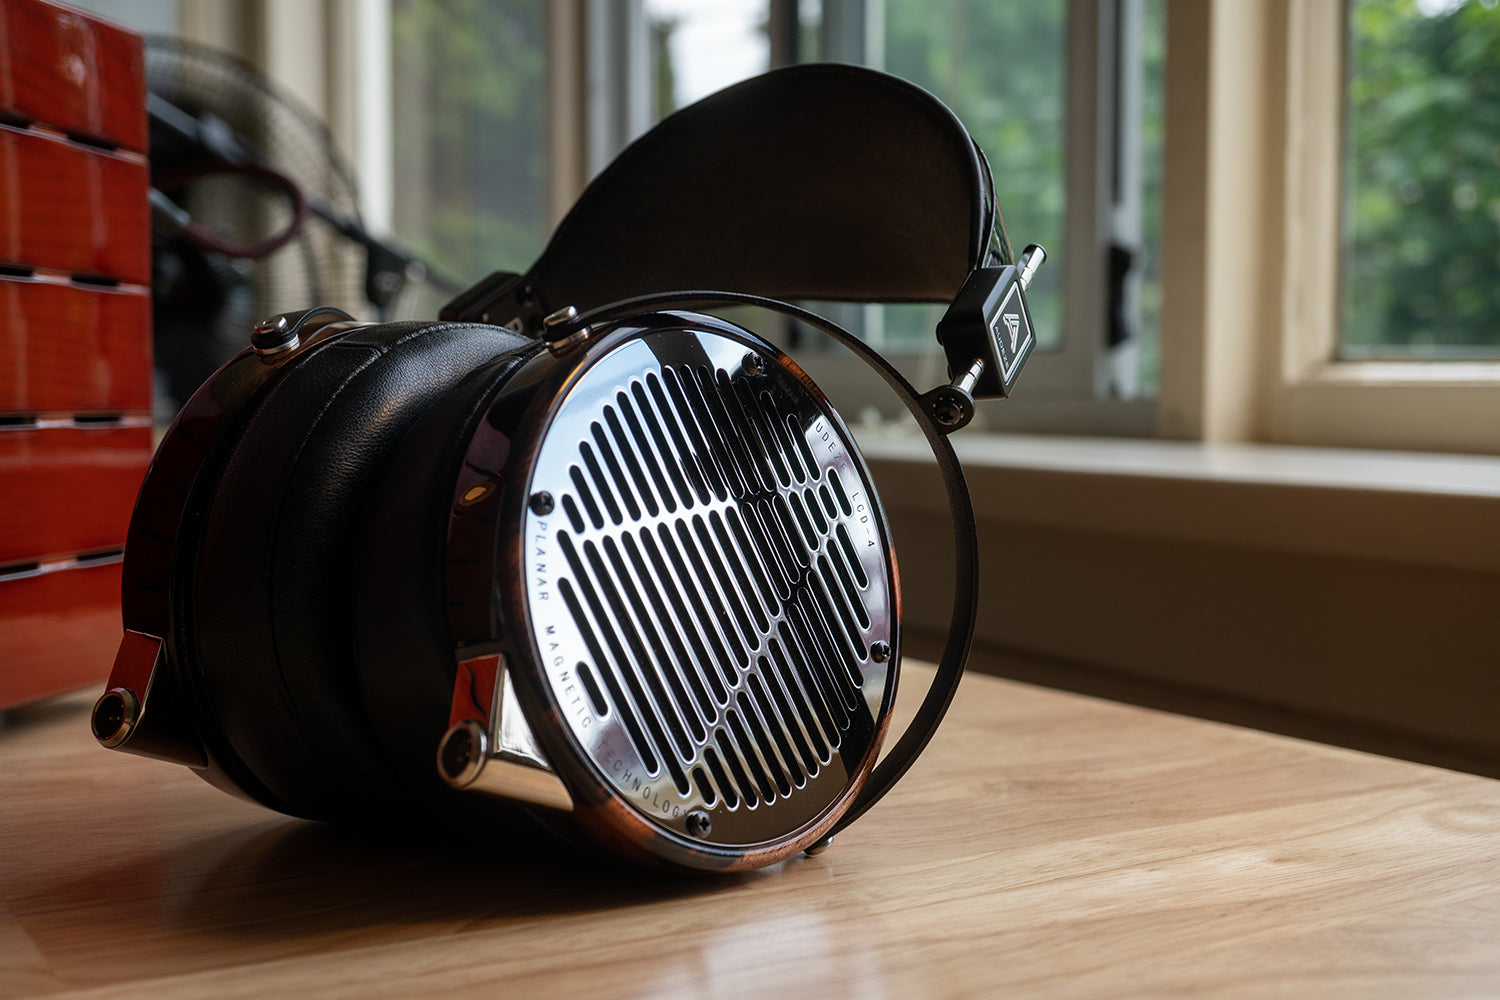 Audeze LCD-4 Planar Magnetic Headphones with Cayin HA-1A MK2 Headphone Tube Amplifier